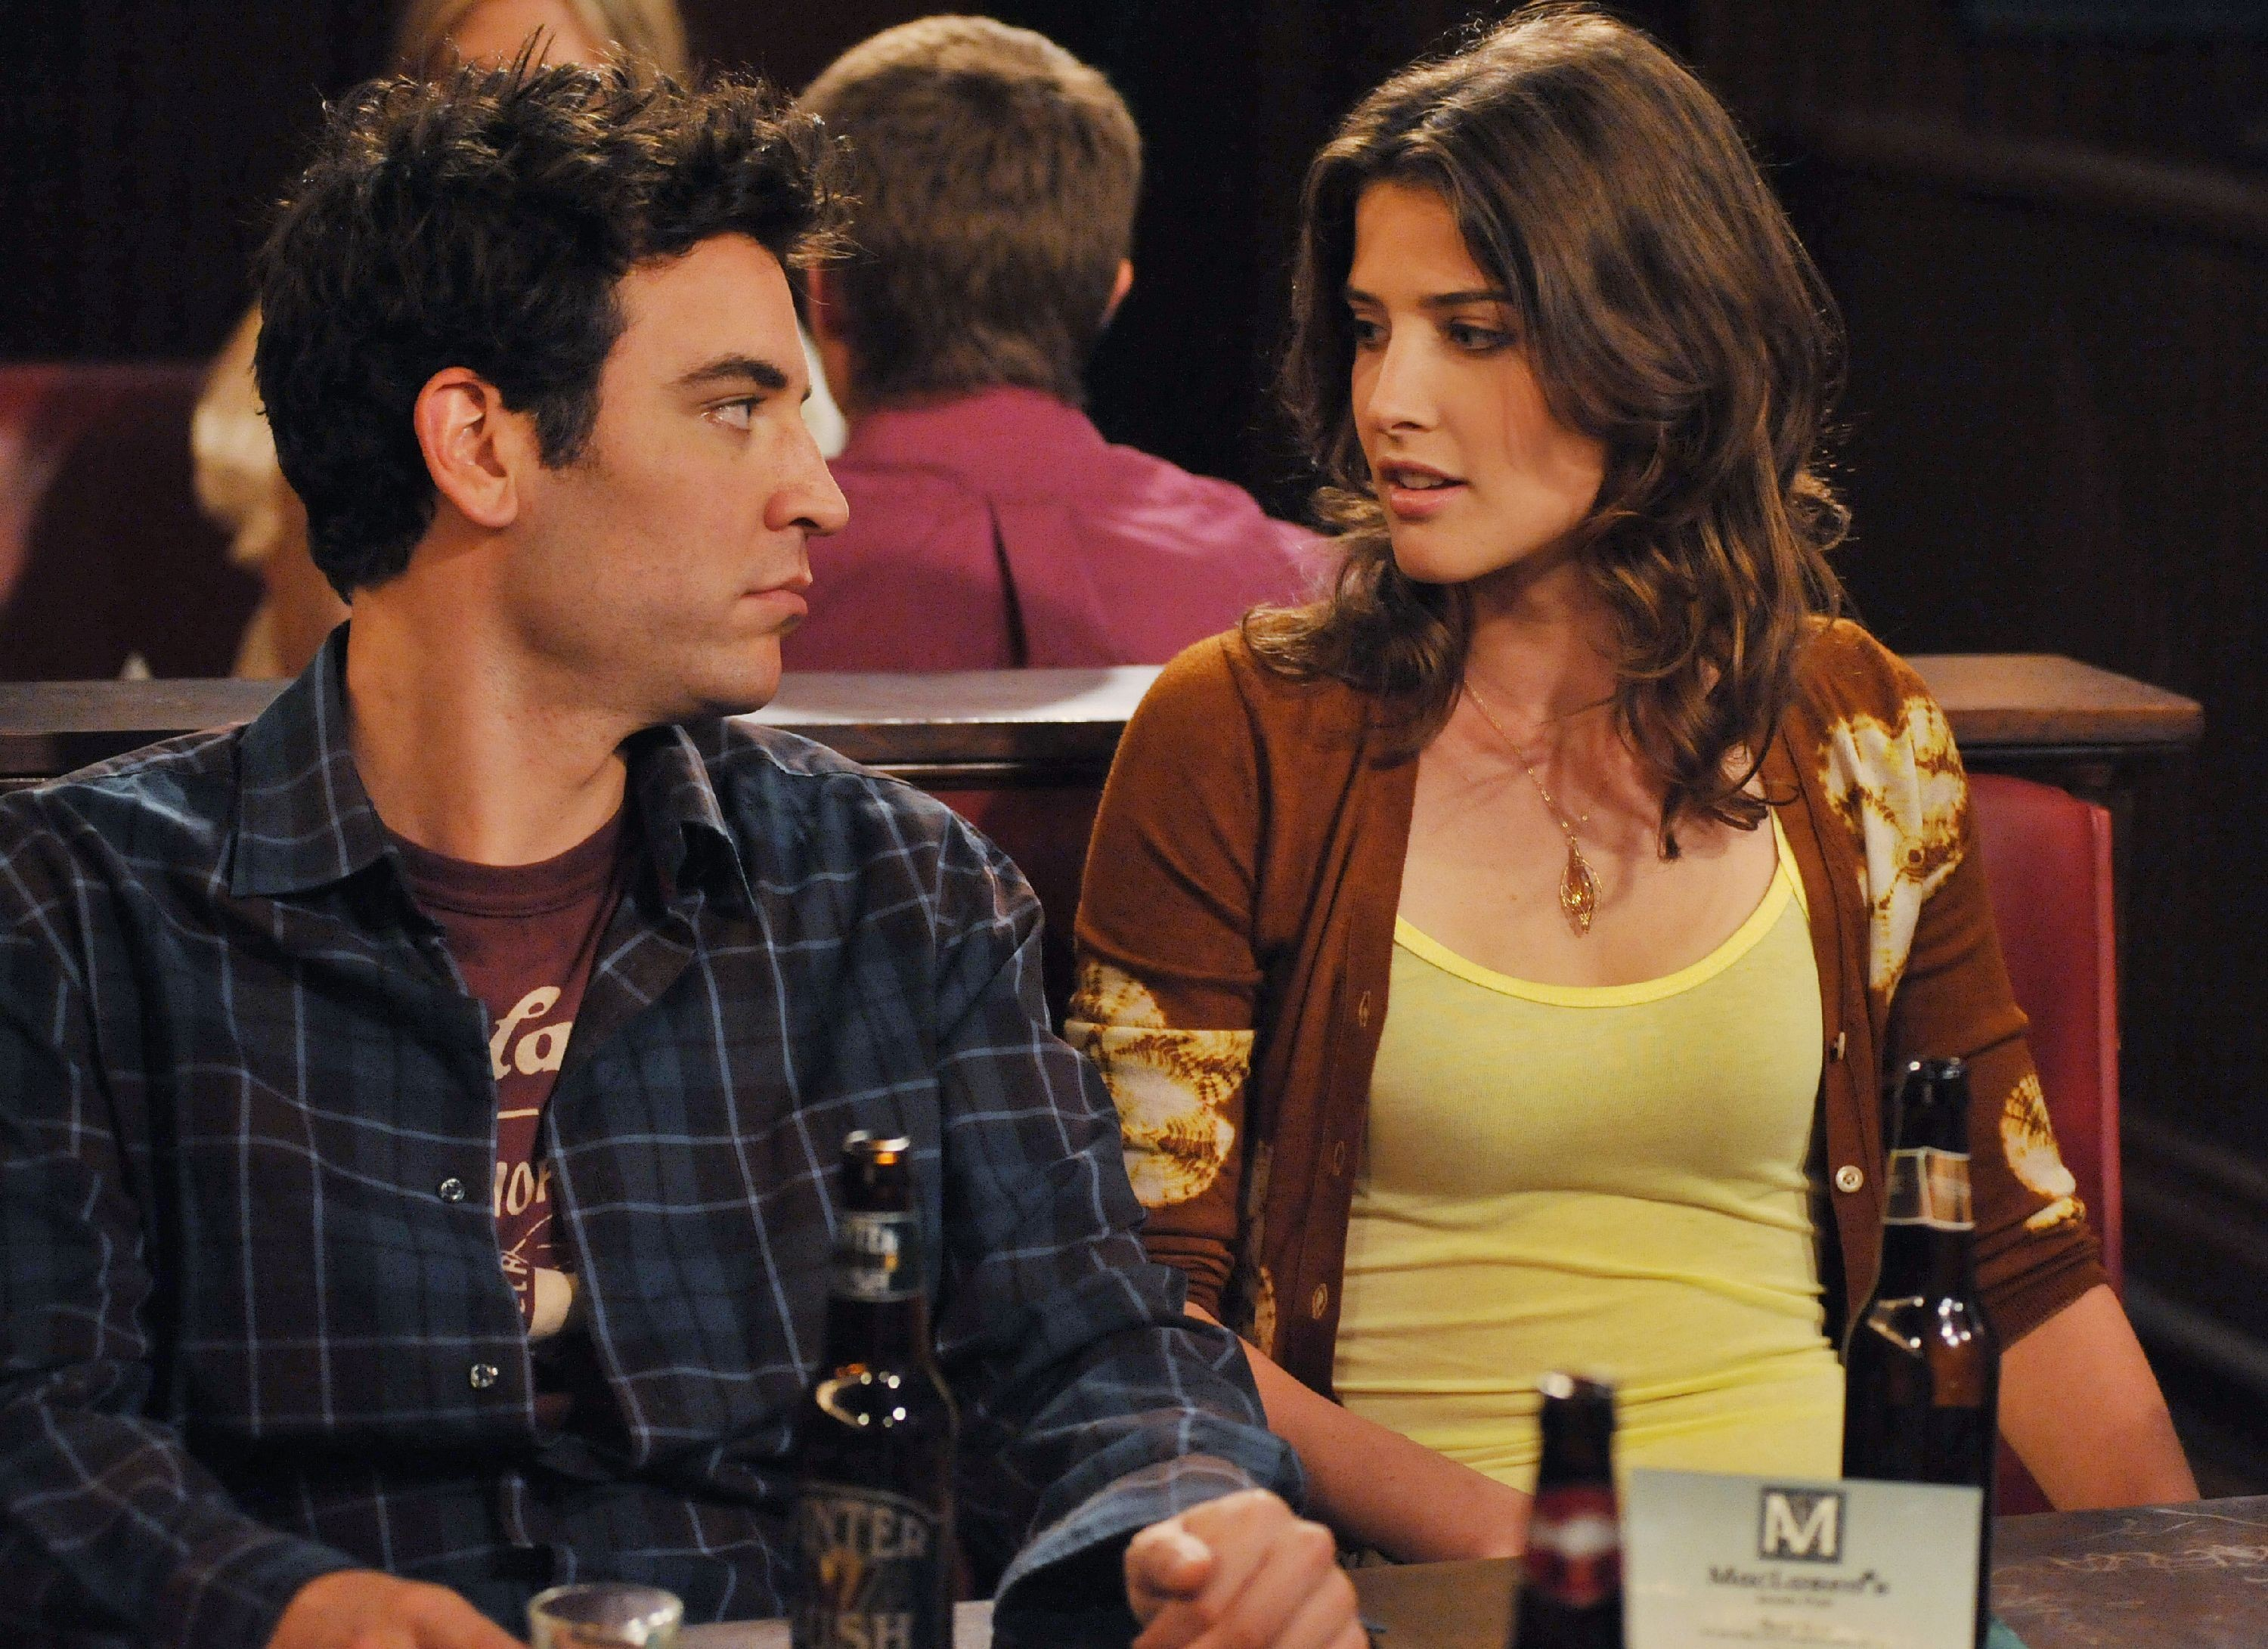 beers cobie smulders How HD Wallpaper